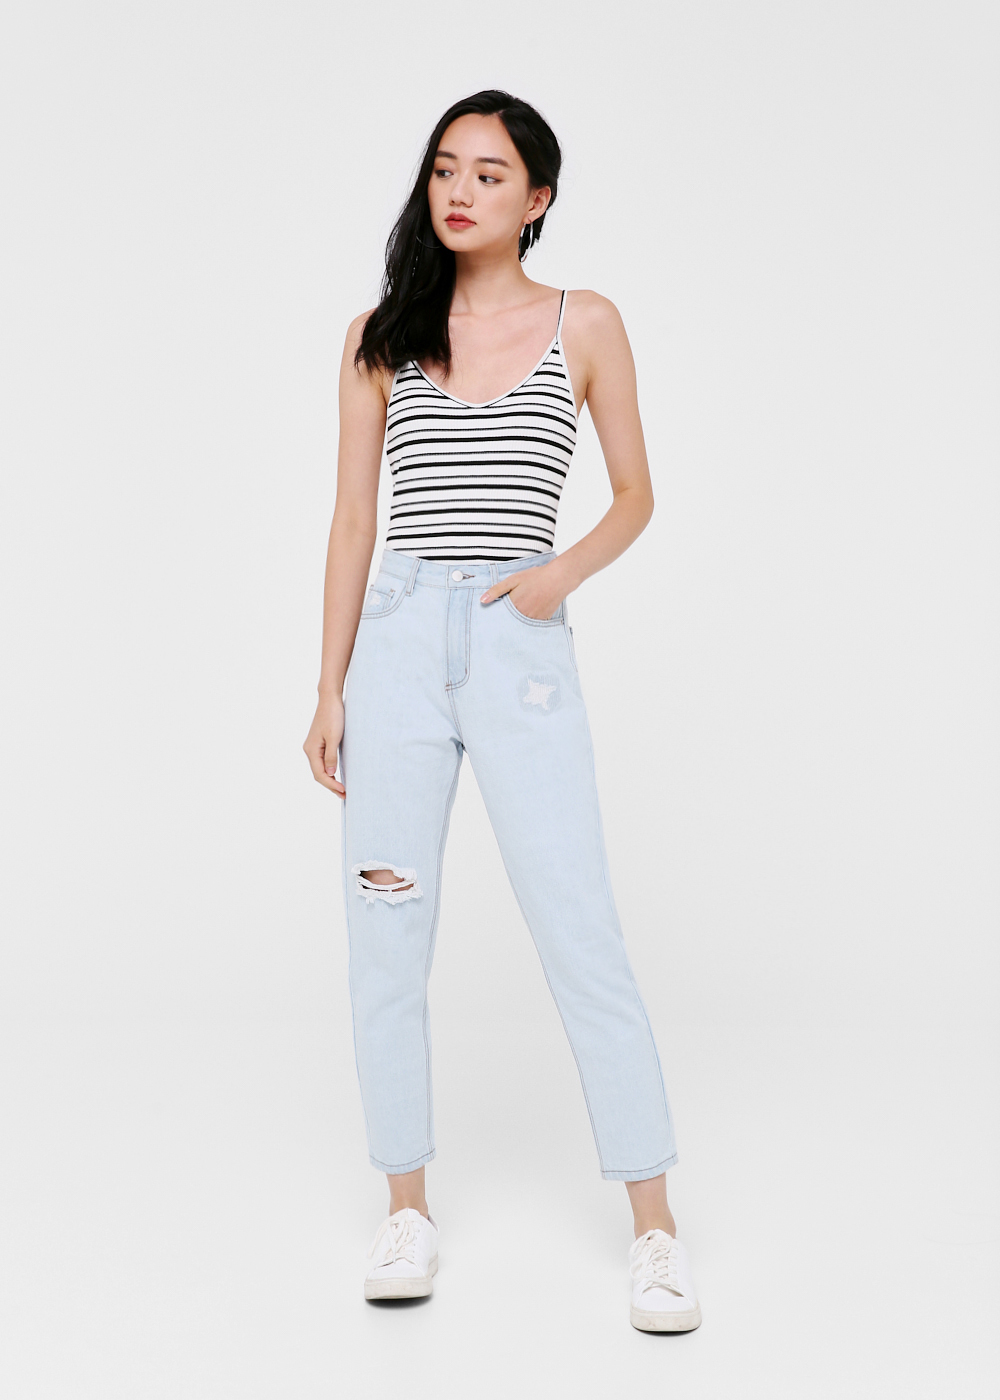 Chad Boyfriend Jeans - Light Wash